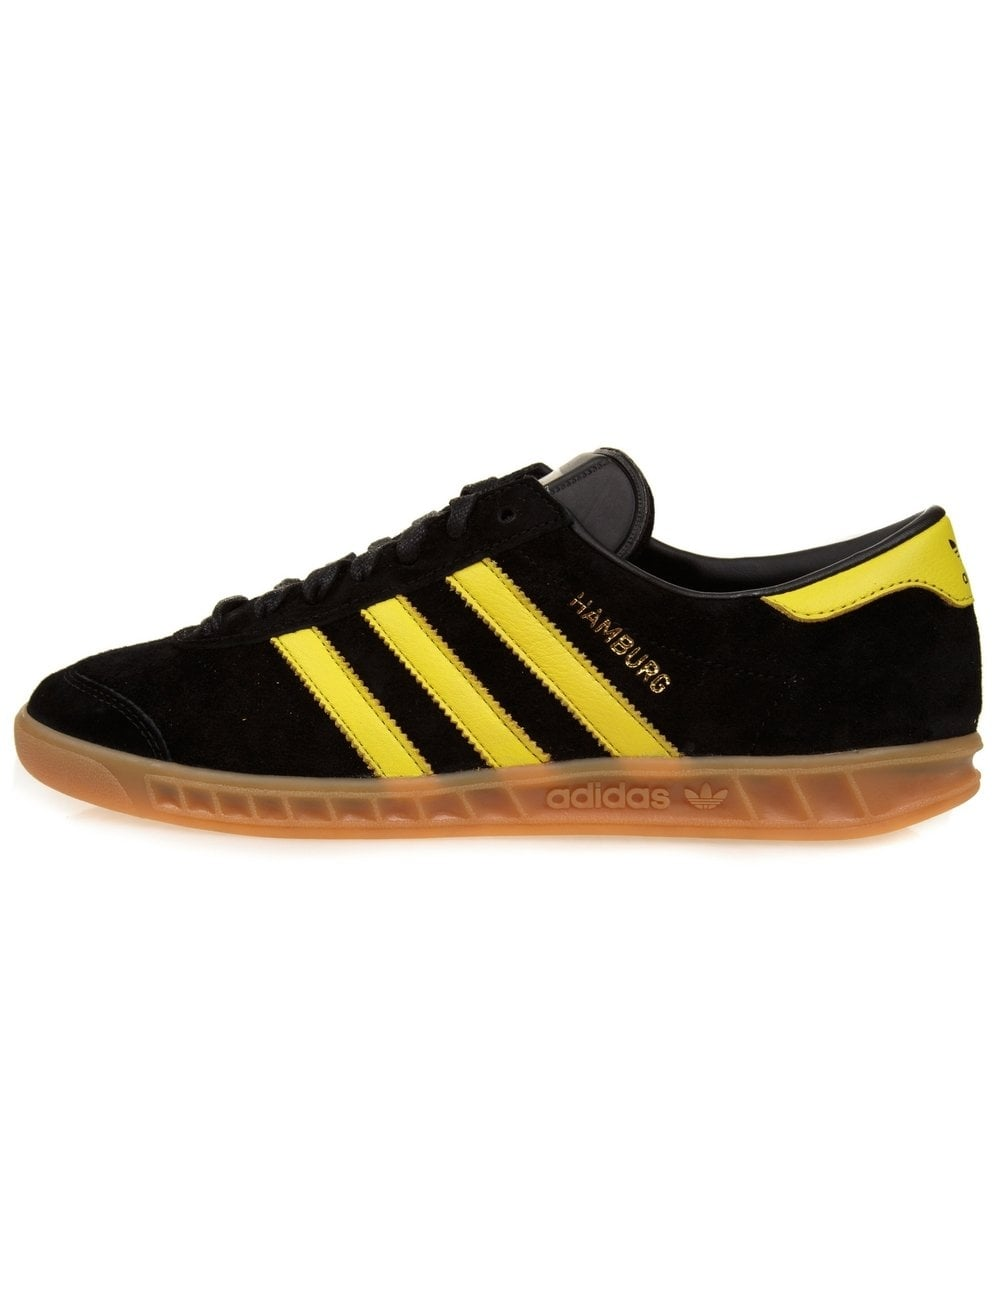 adidas hamburg black